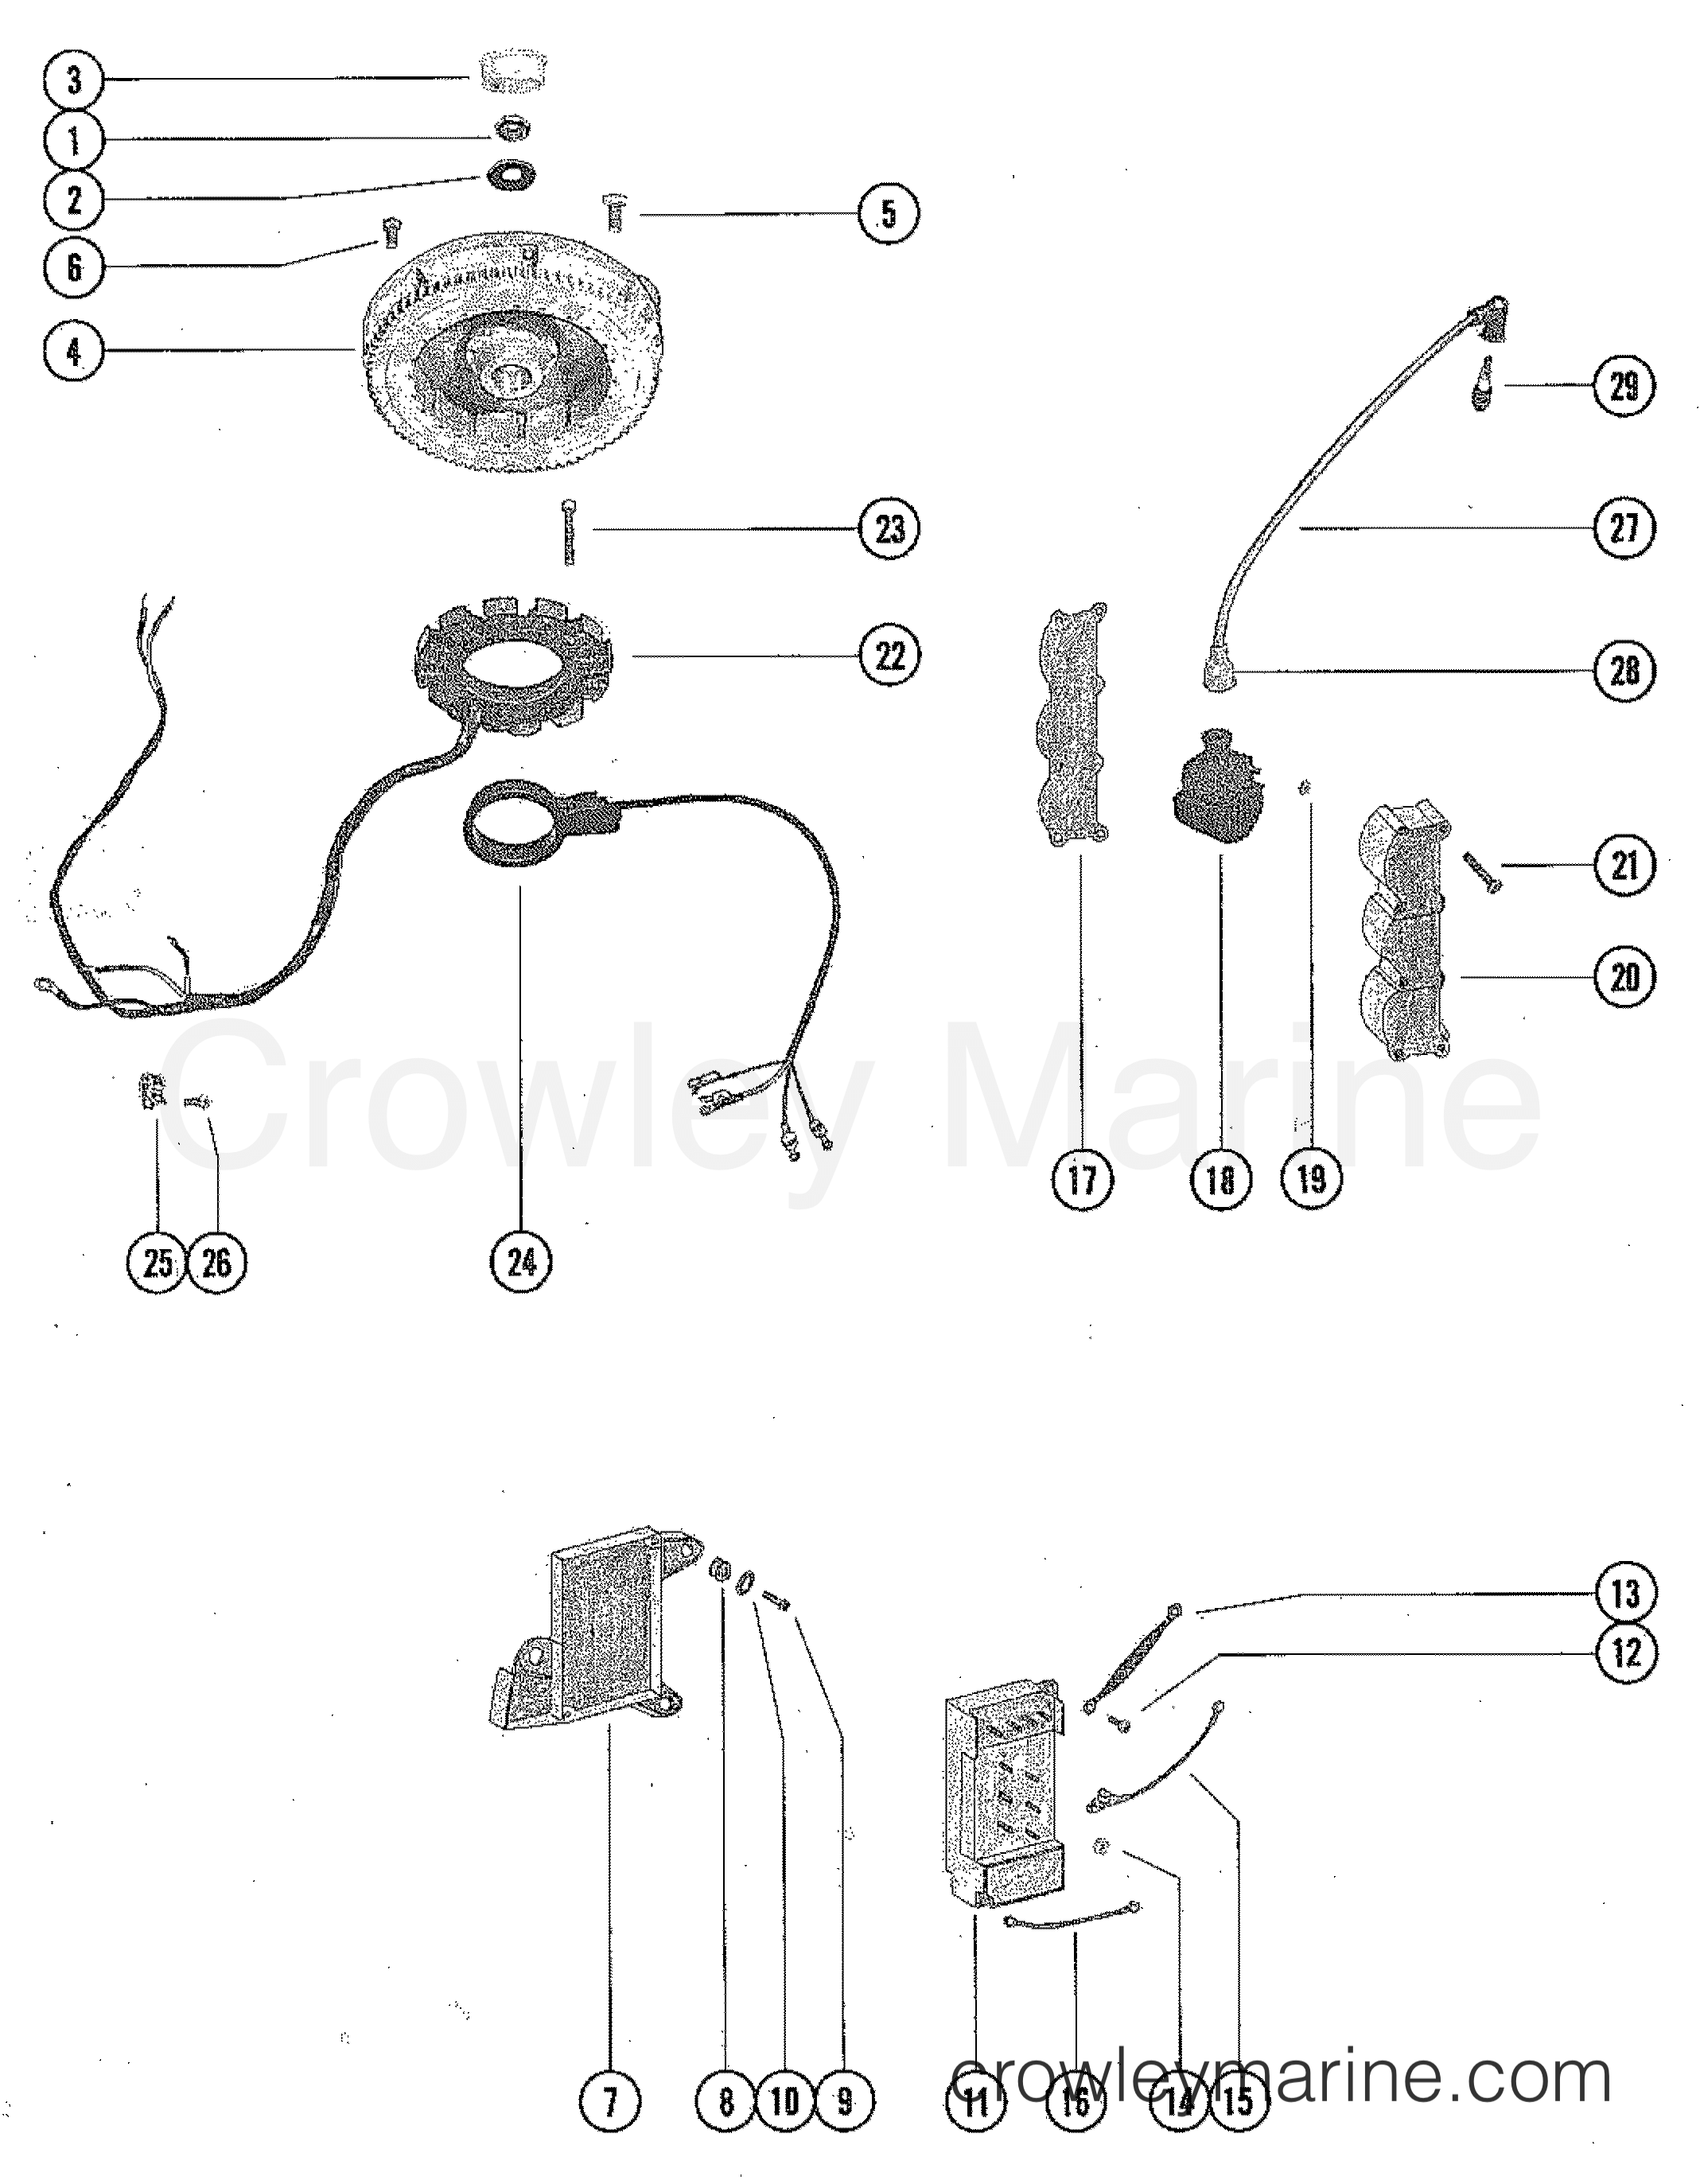 Flywheel Switch Box Ignition Coil And Stator Assembly